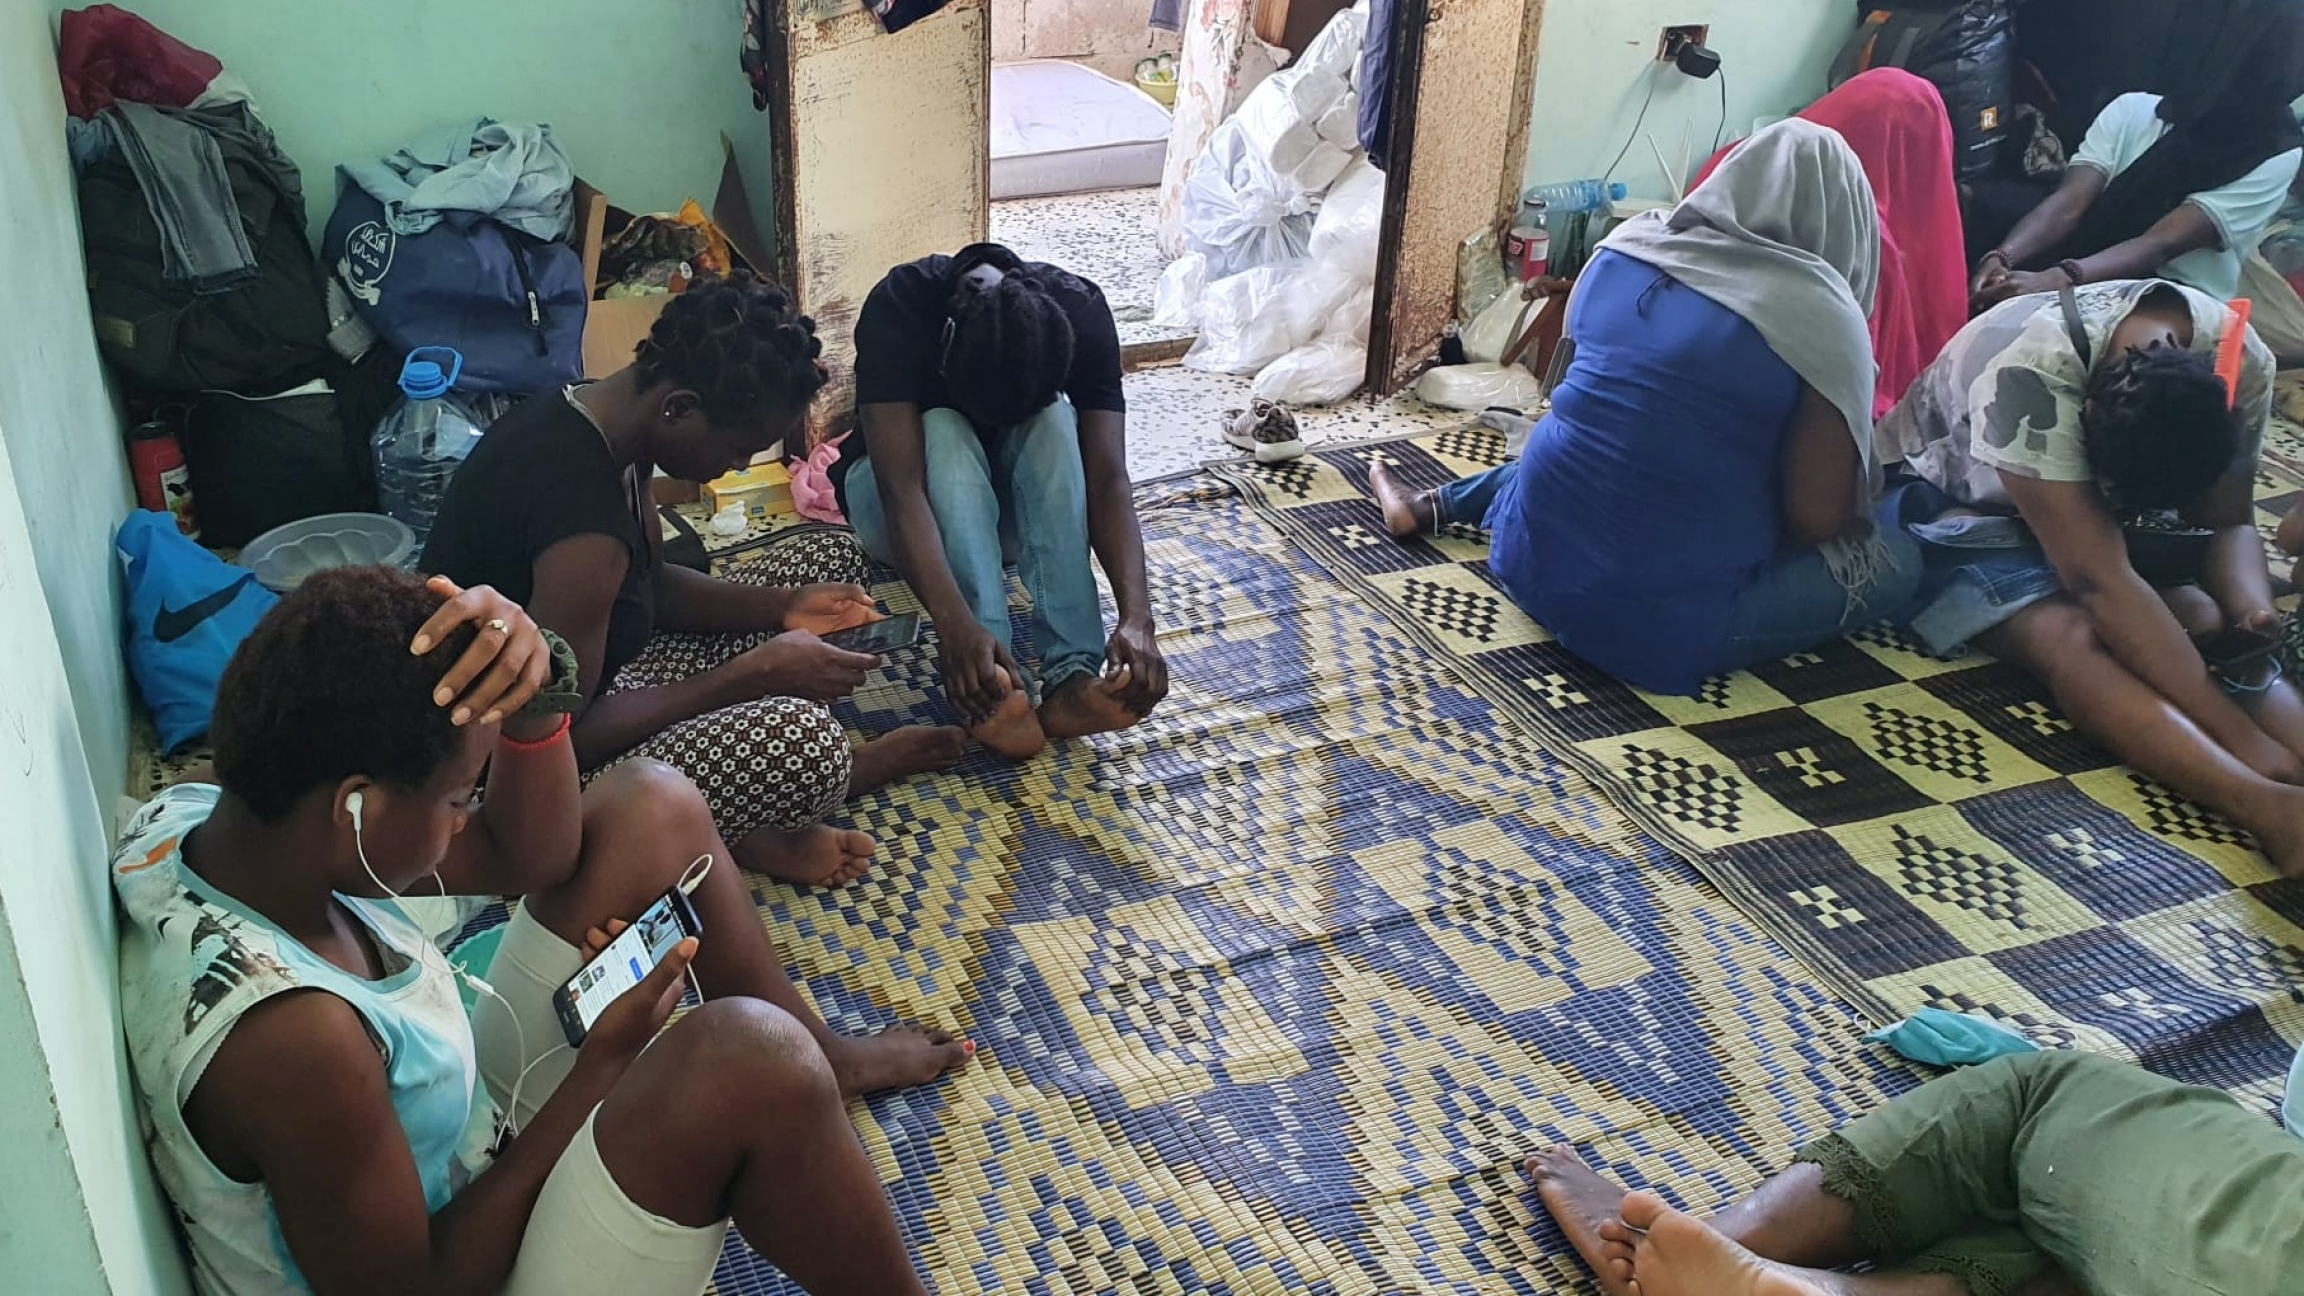 Several African women sit in a room with light blue walls, next to luggage and personal belongings.